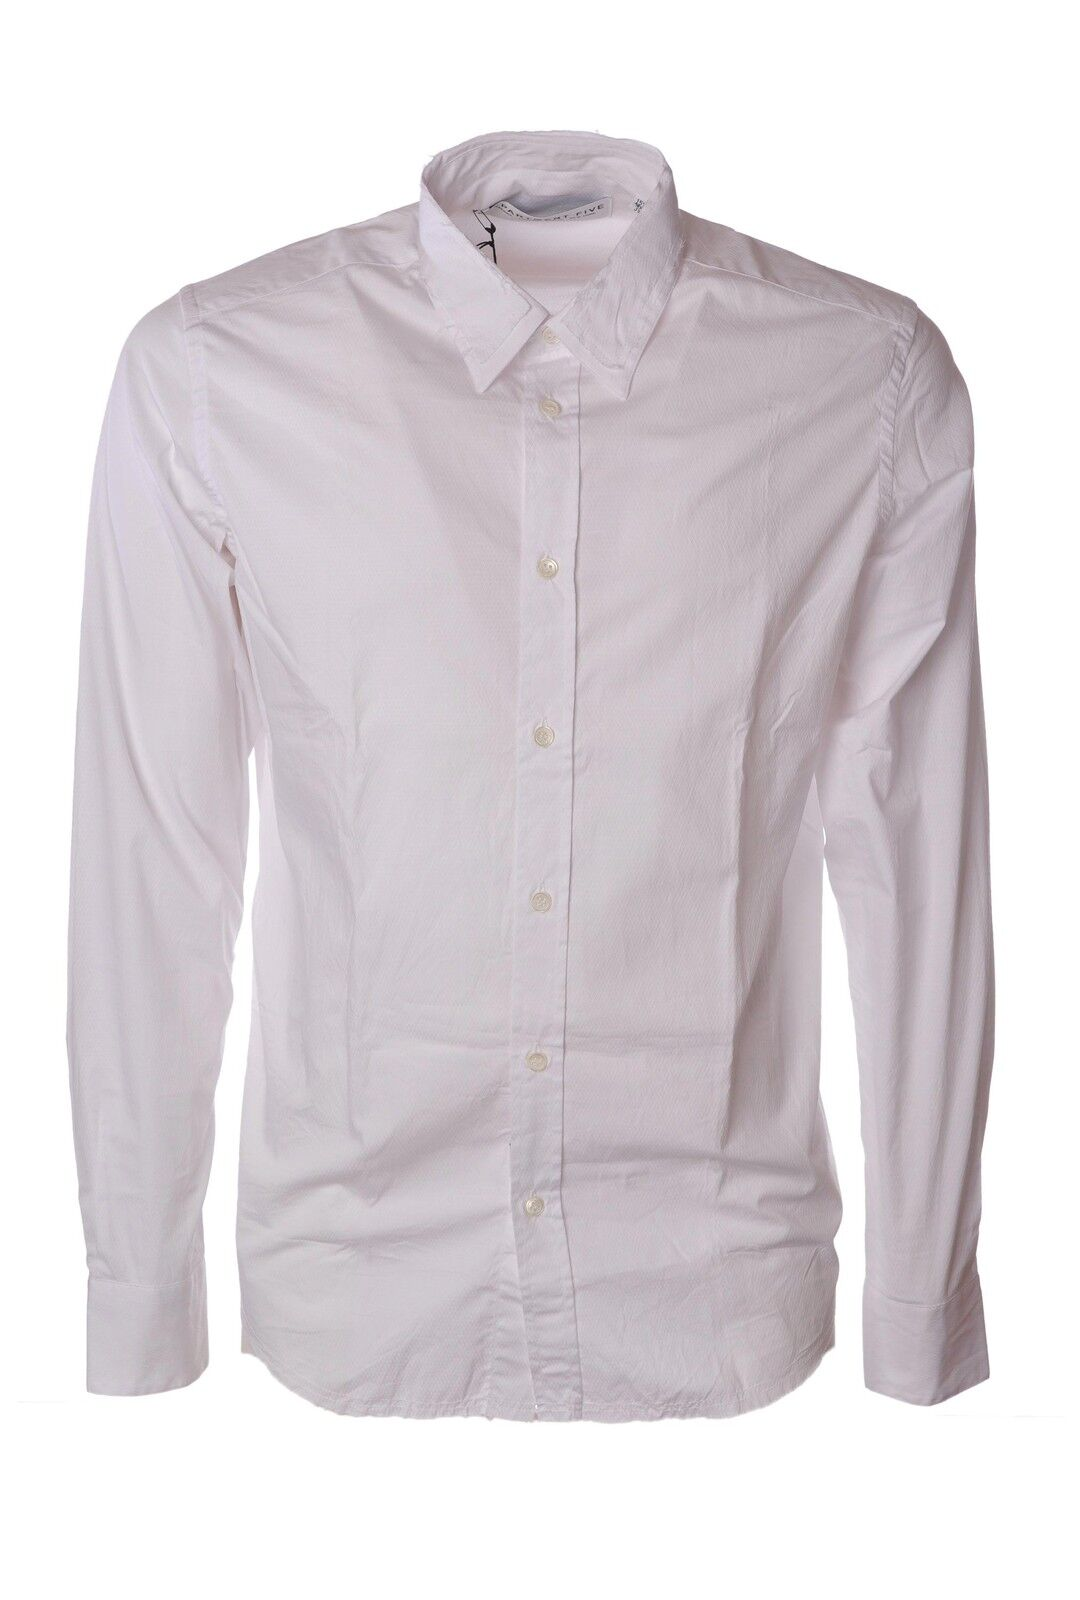 Department 5  -  Shirts - Male - Weiß - 3811529A184748